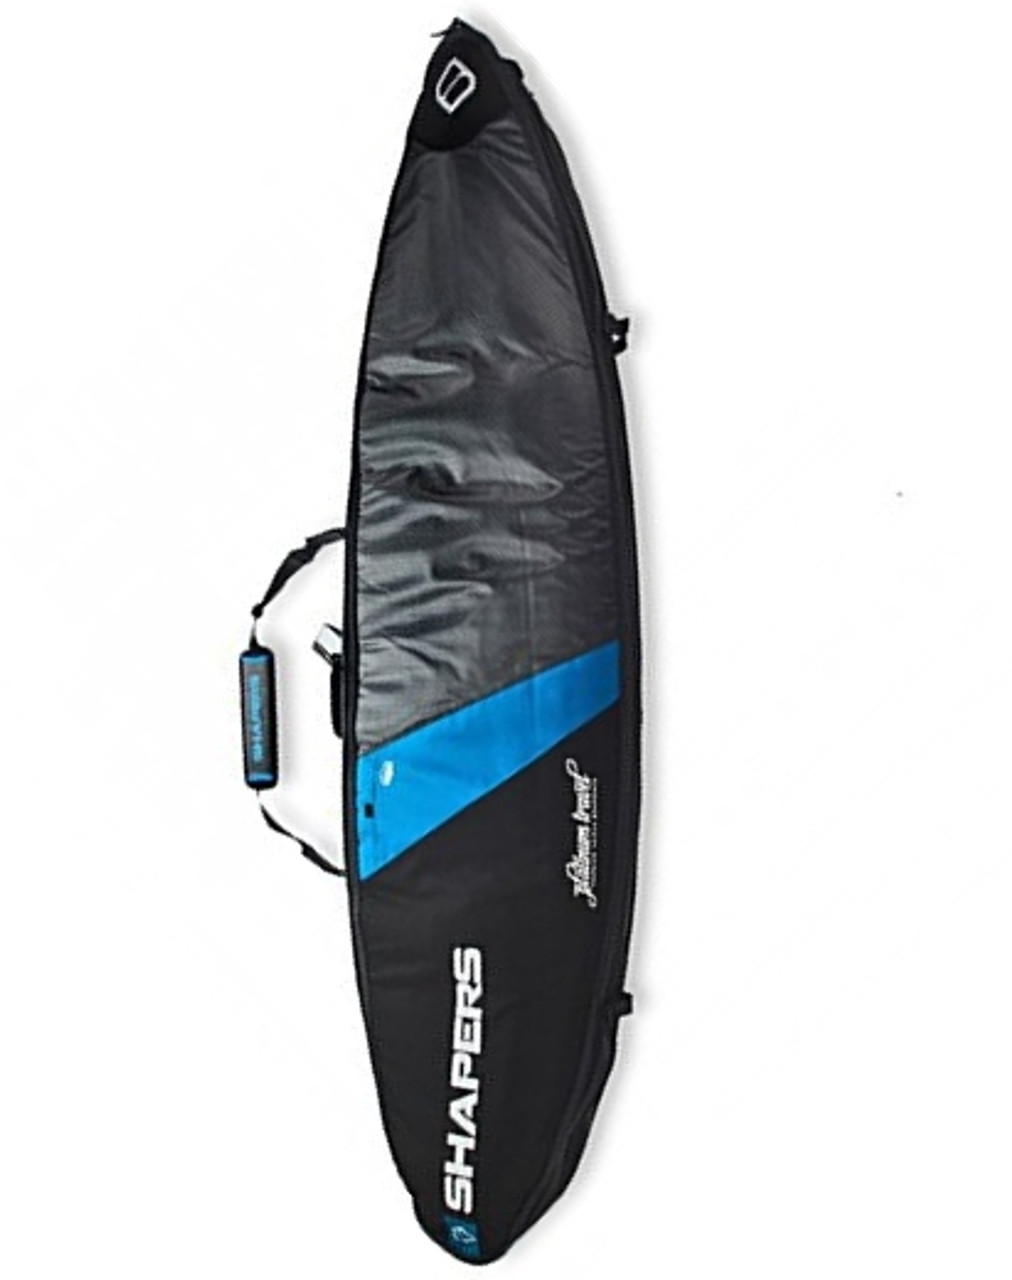 shapers 3 shortboard travel bag